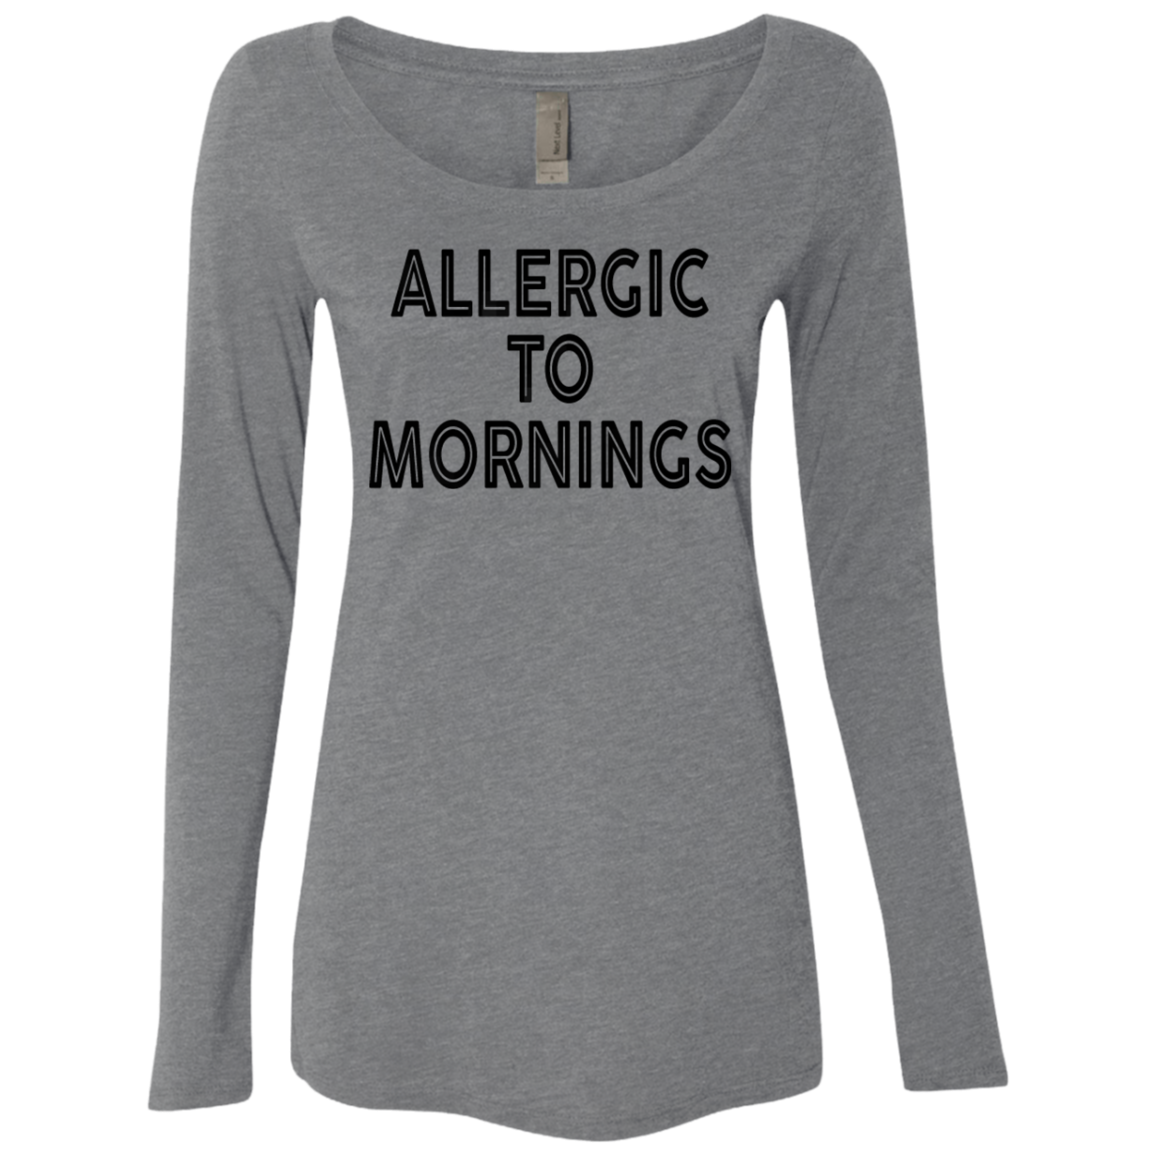 Allergic To Mornings Women's Long Sleeve Tee